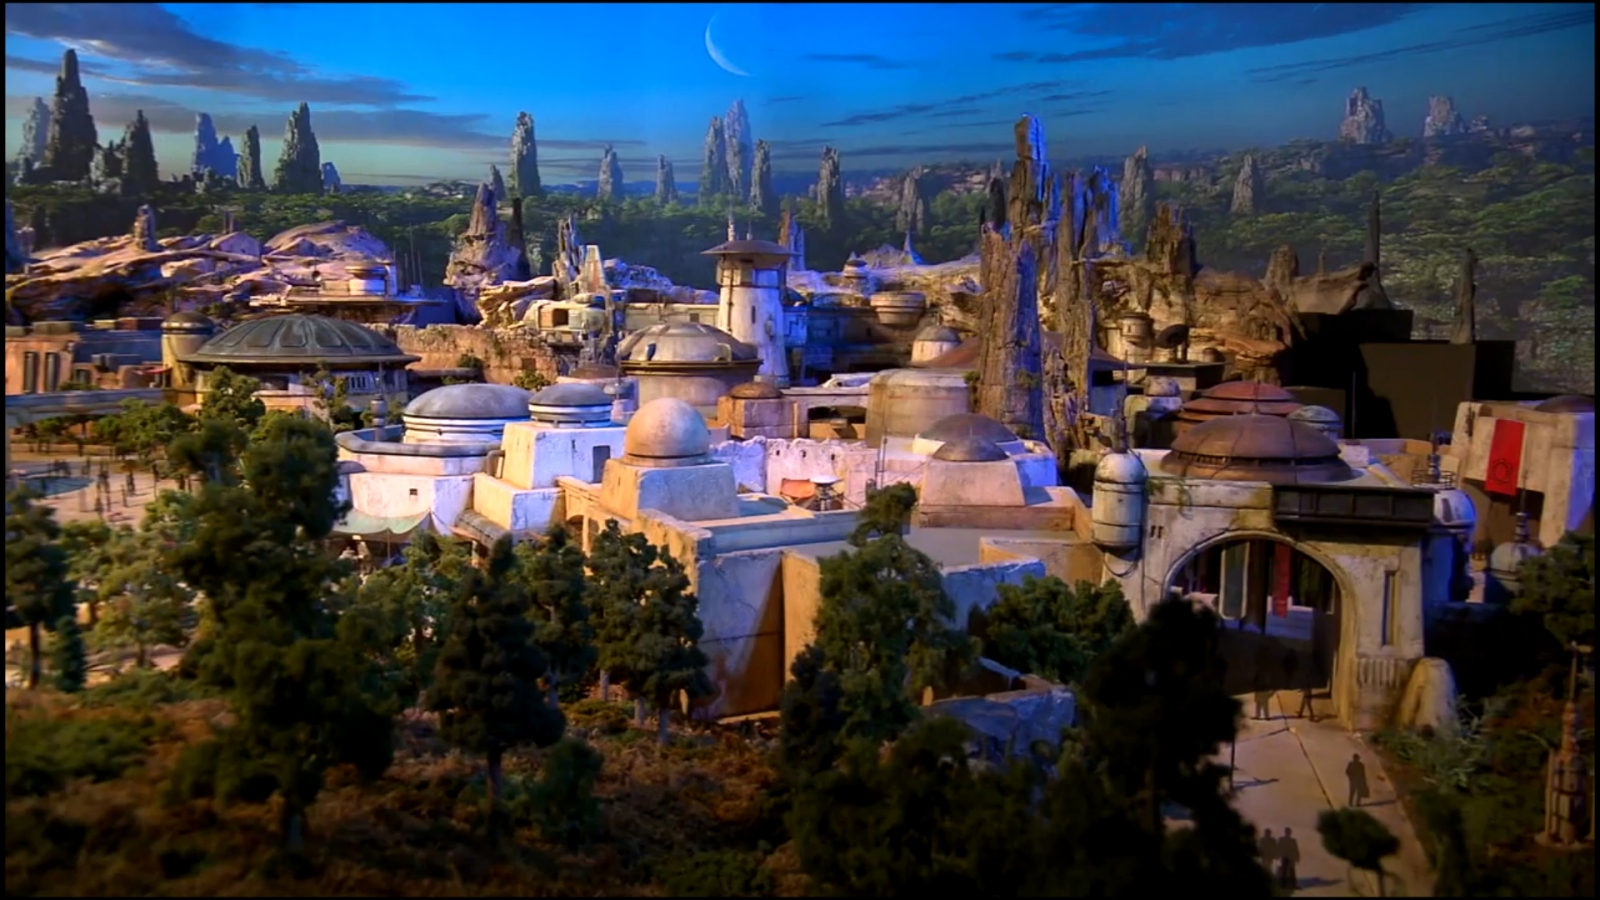 First glimpse of Disney Park's Star Wars-inspired land model